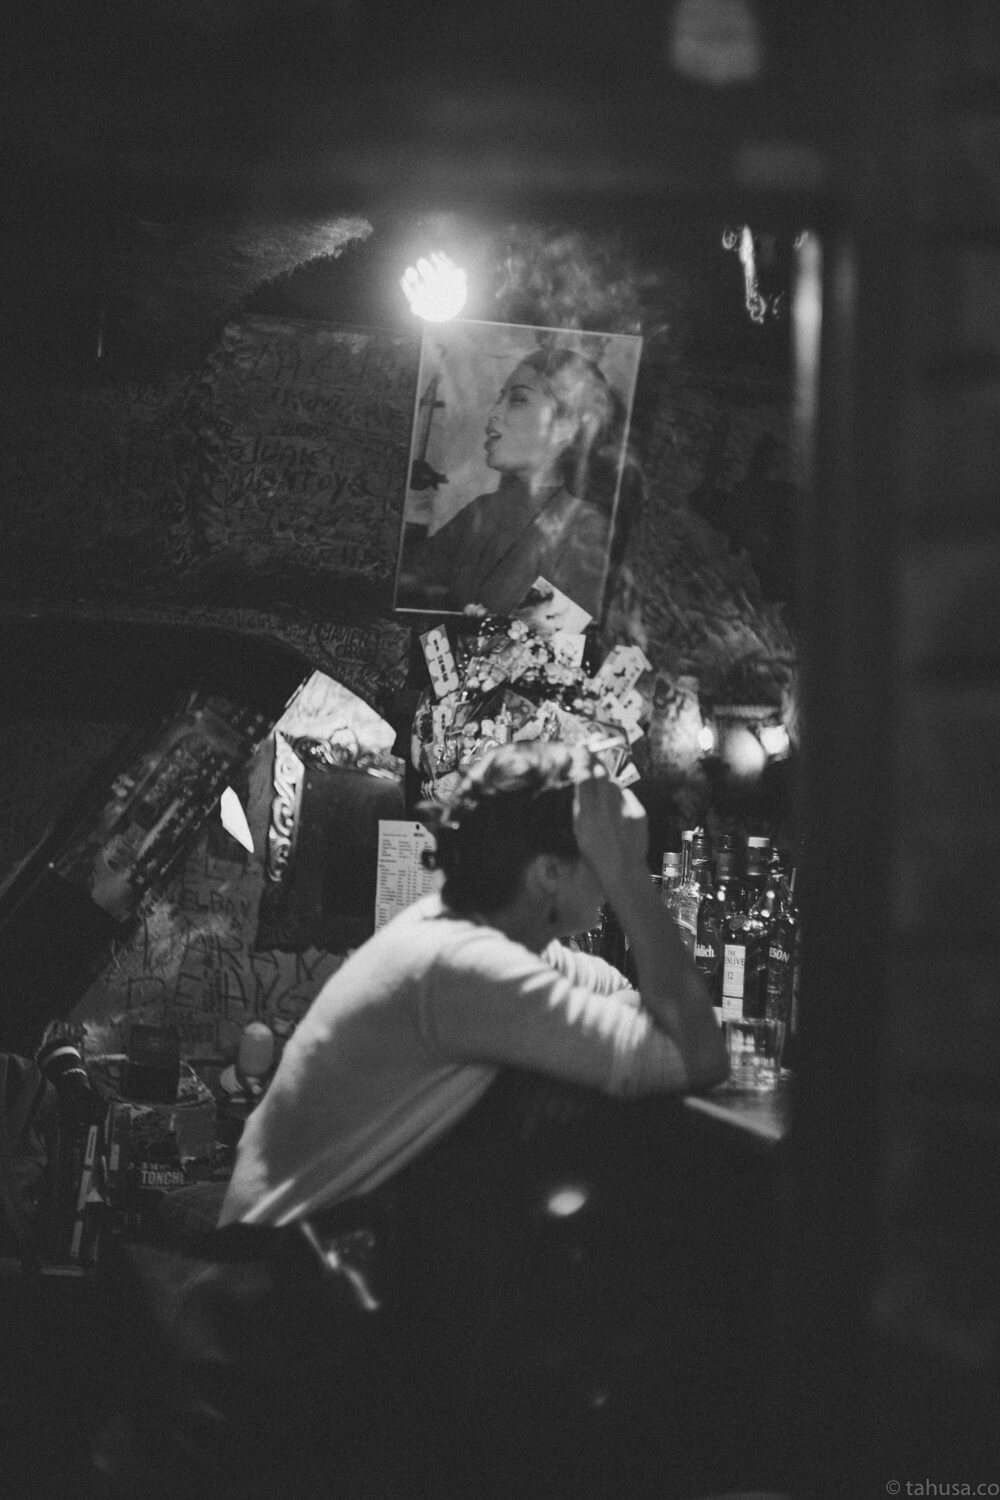 woman-drinking-and-smoking-in-bar-inside-Goldengai-Golden-Gai-Famous-shinjuku-district-japan-street-tokyo-streetphotography-blackandwhite-BW-B&W-japanese-travel-with-Sony-A7-A7II-digital-camera-old-nokton-voigtlander-50mm-f1.5-1.5-prominent-mount-vintage